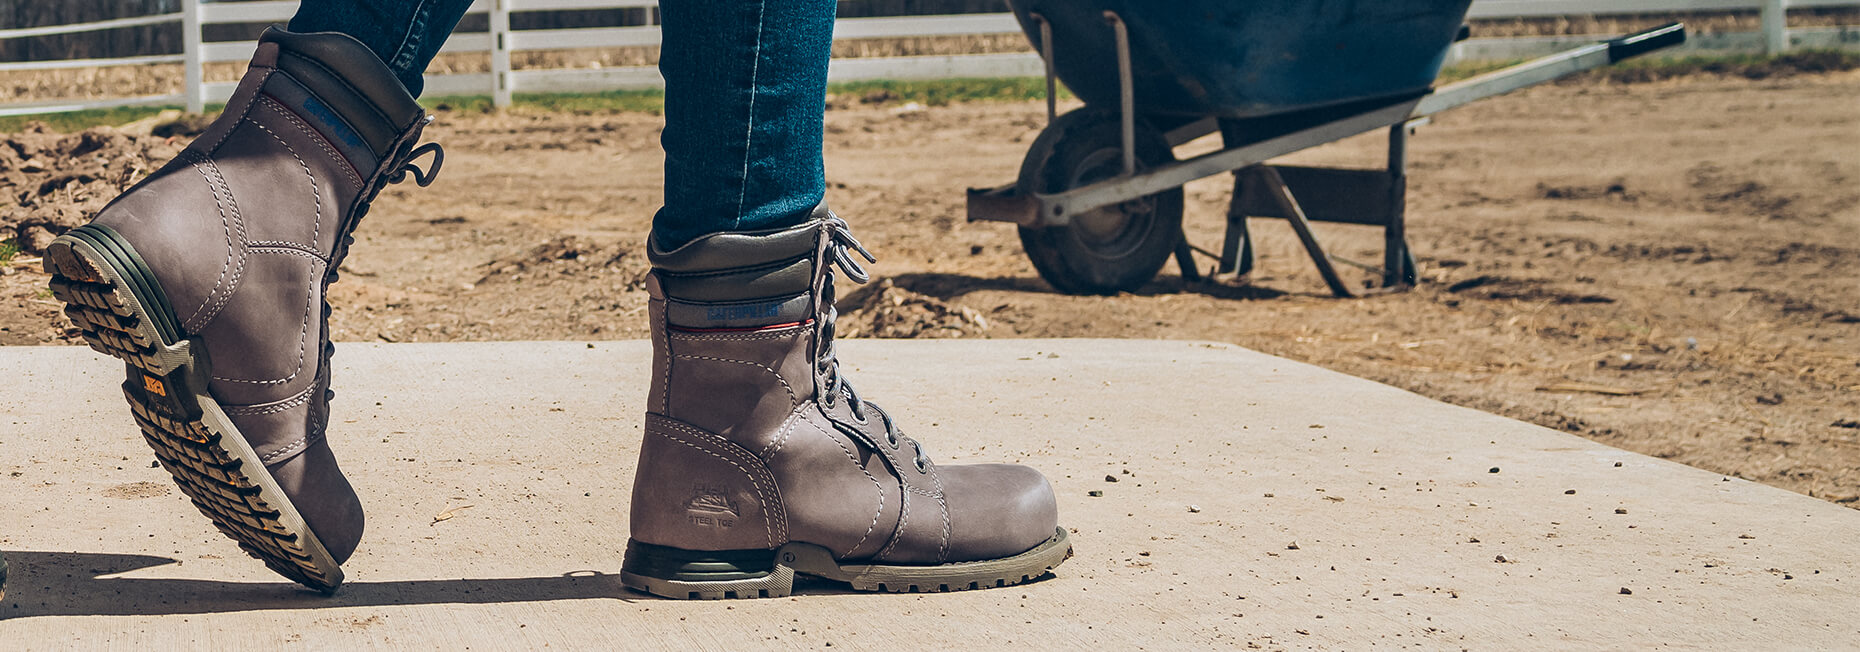 063a5bdc5dc Women's Boots - Shop Rugged Boots For Women | Cat Footwear